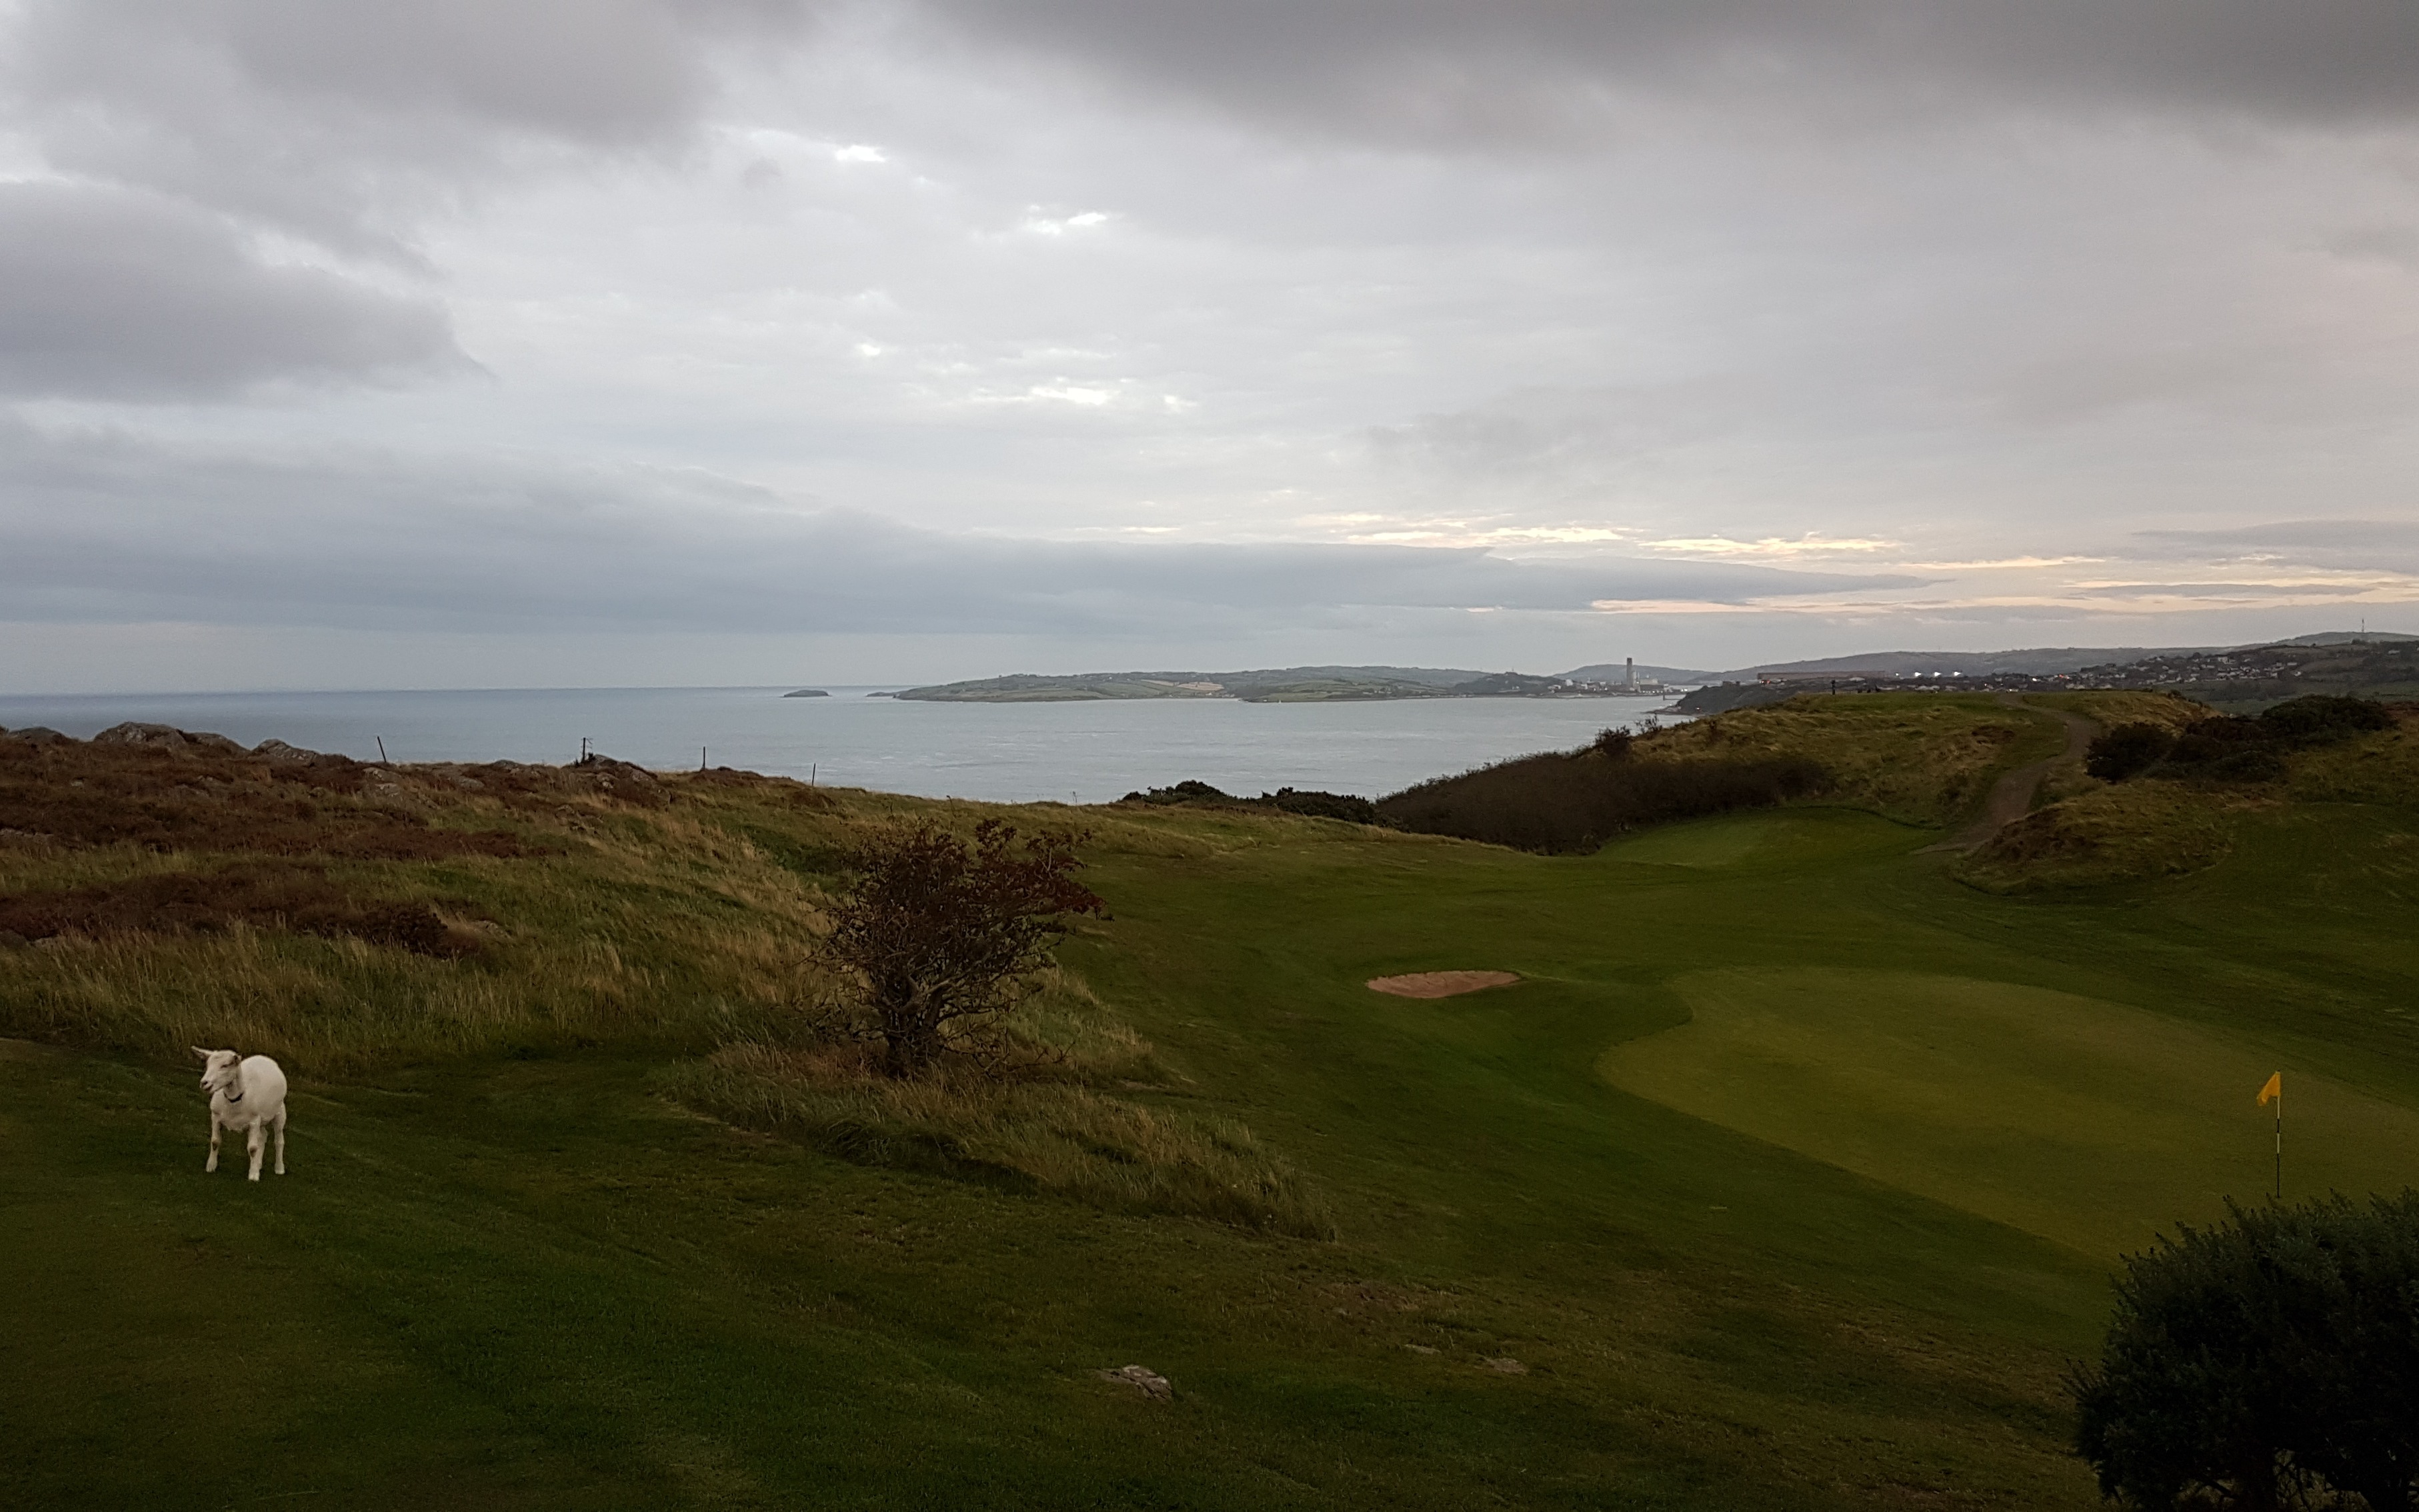 Looking from 3rd tee towards Islandmagee and Larne Golf Club